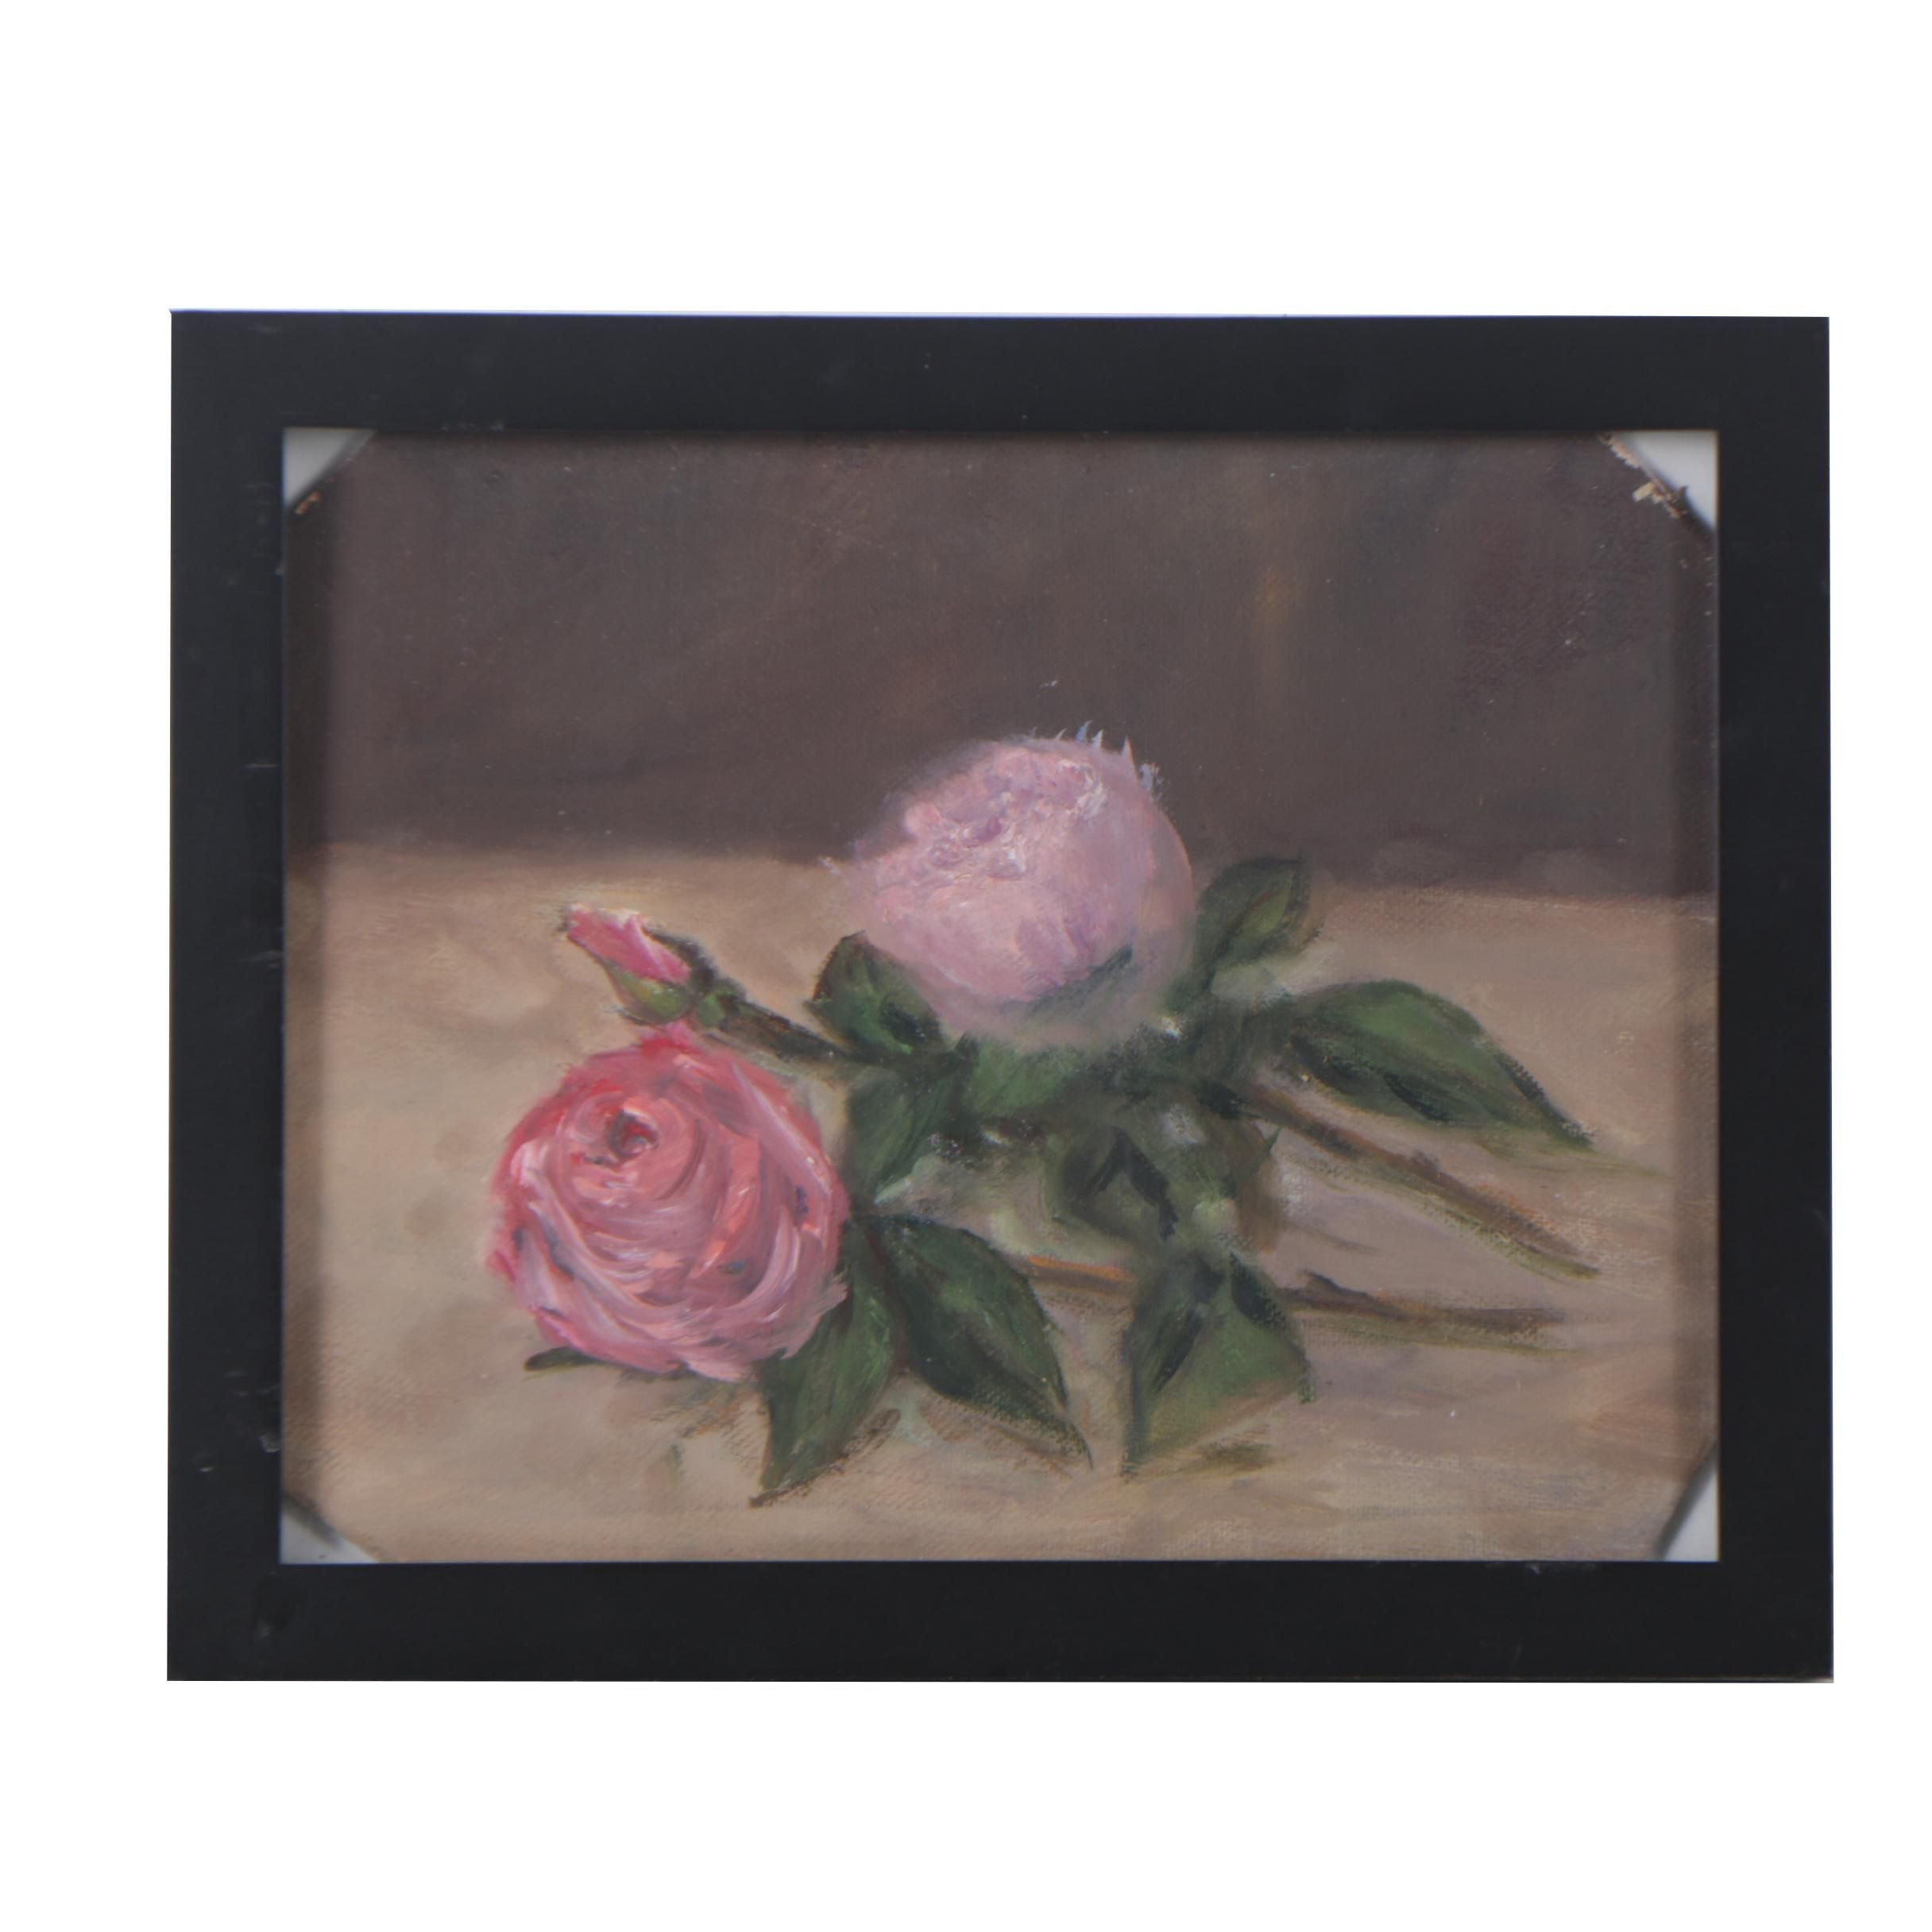 Oil Painting on Canvas Board of Roses